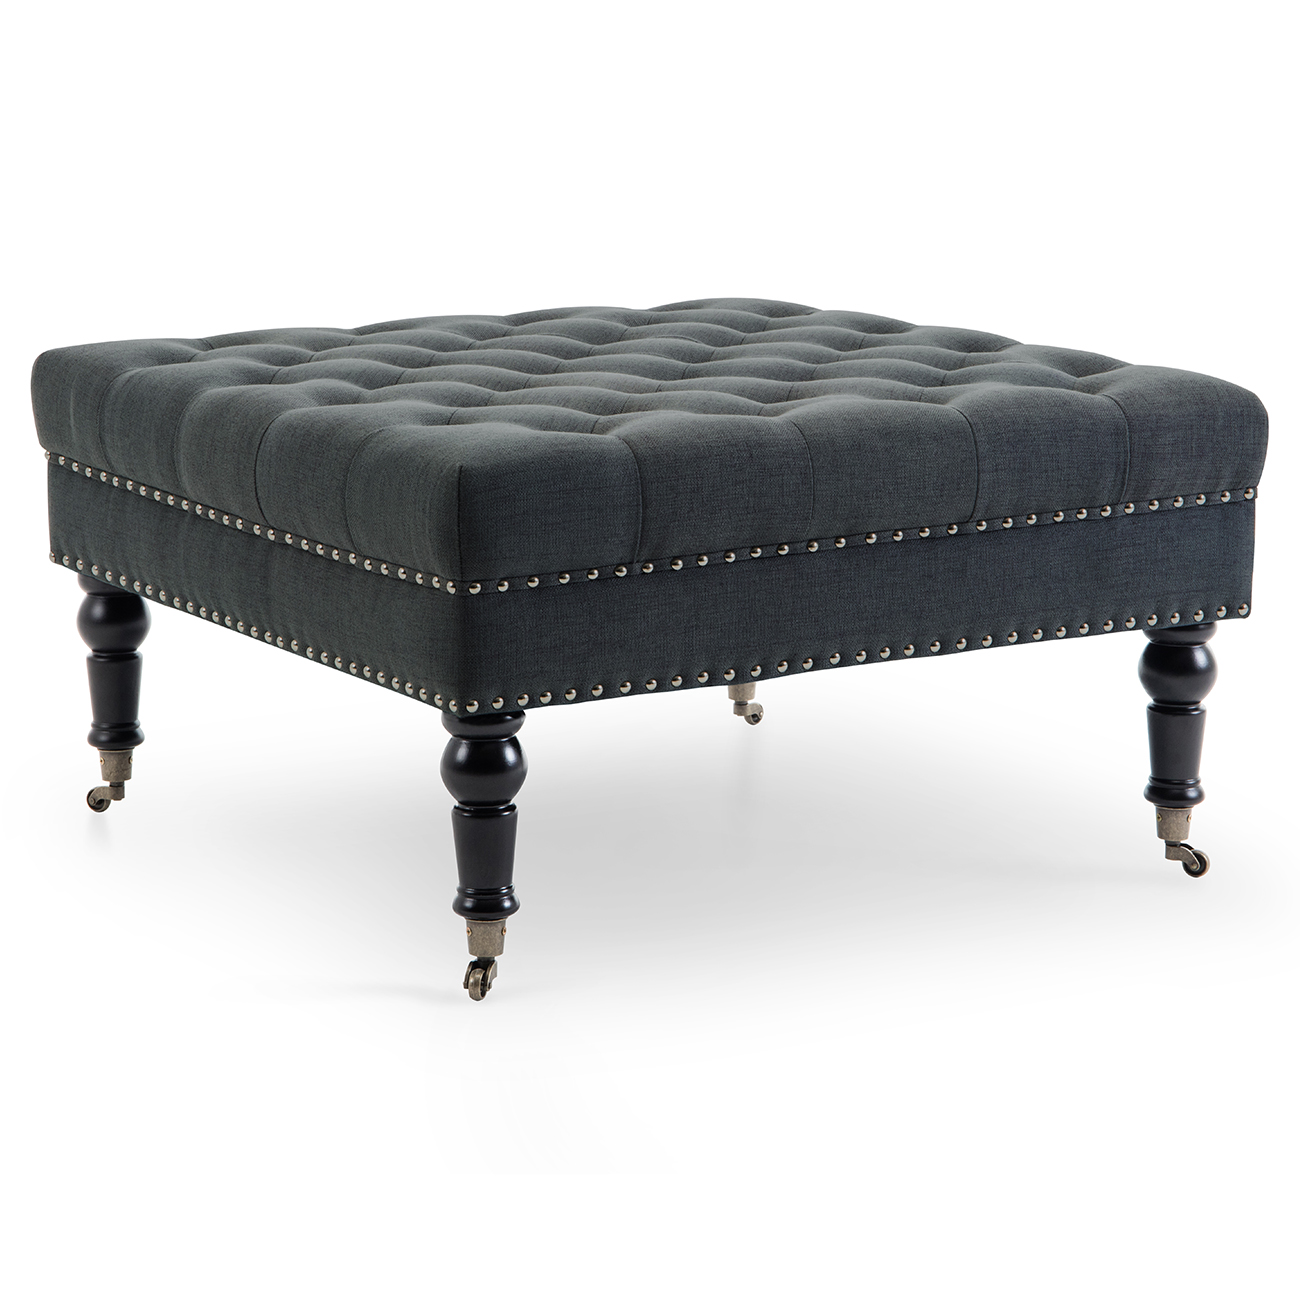 Phenomenal Details About Ottoman Square Bench Tray Button Tufted Nailhead Trim W Rolling Wheels Gmtry Best Dining Table And Chair Ideas Images Gmtryco